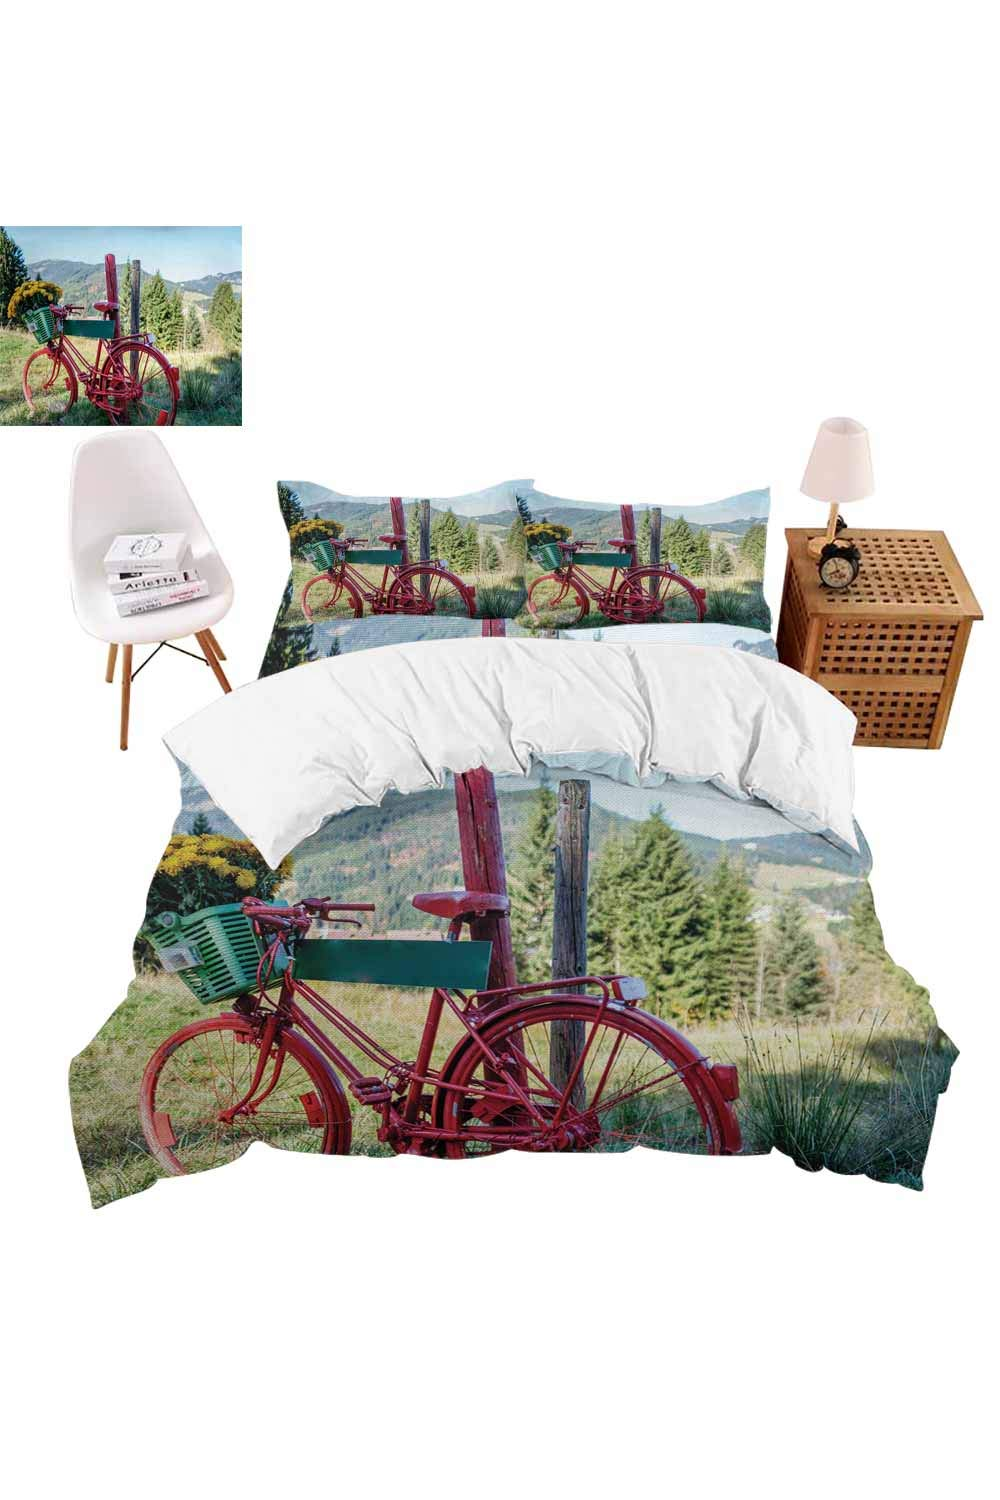 vroselv-home 4 Pieces Bedding Sets, Mountain Landscape and Bike Duvet Cover Set,Include 1 Flat Sheet 1 Duvet Cover and 2 Pillow Cases - Twin Size/NO Comforter